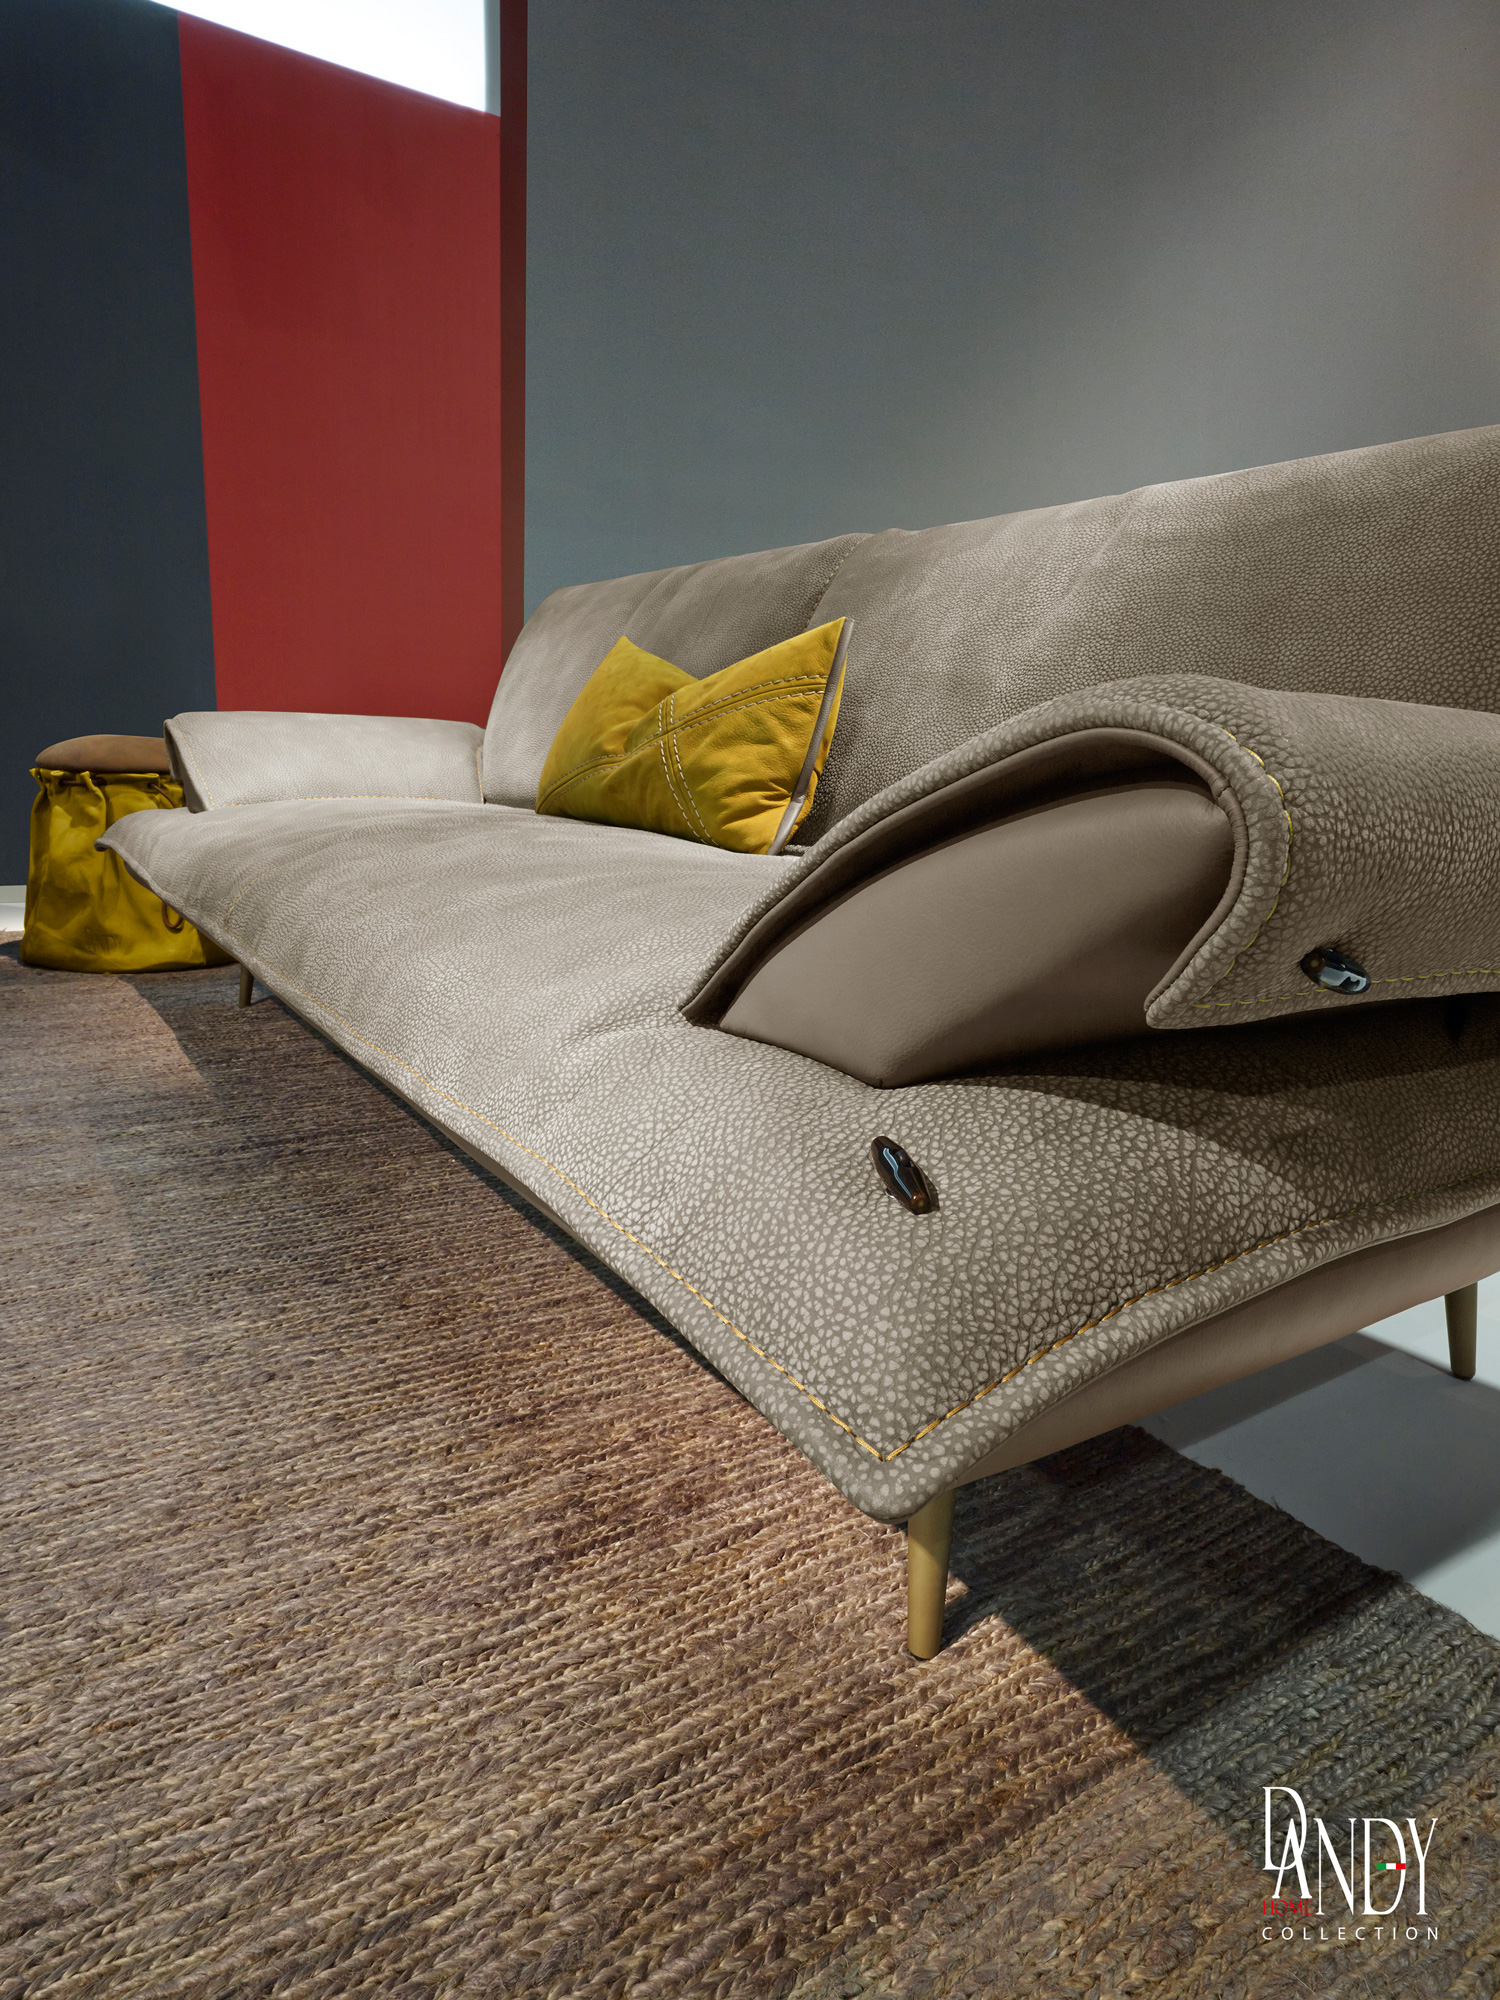 GAMMA-the-are-of-upholstery-feature